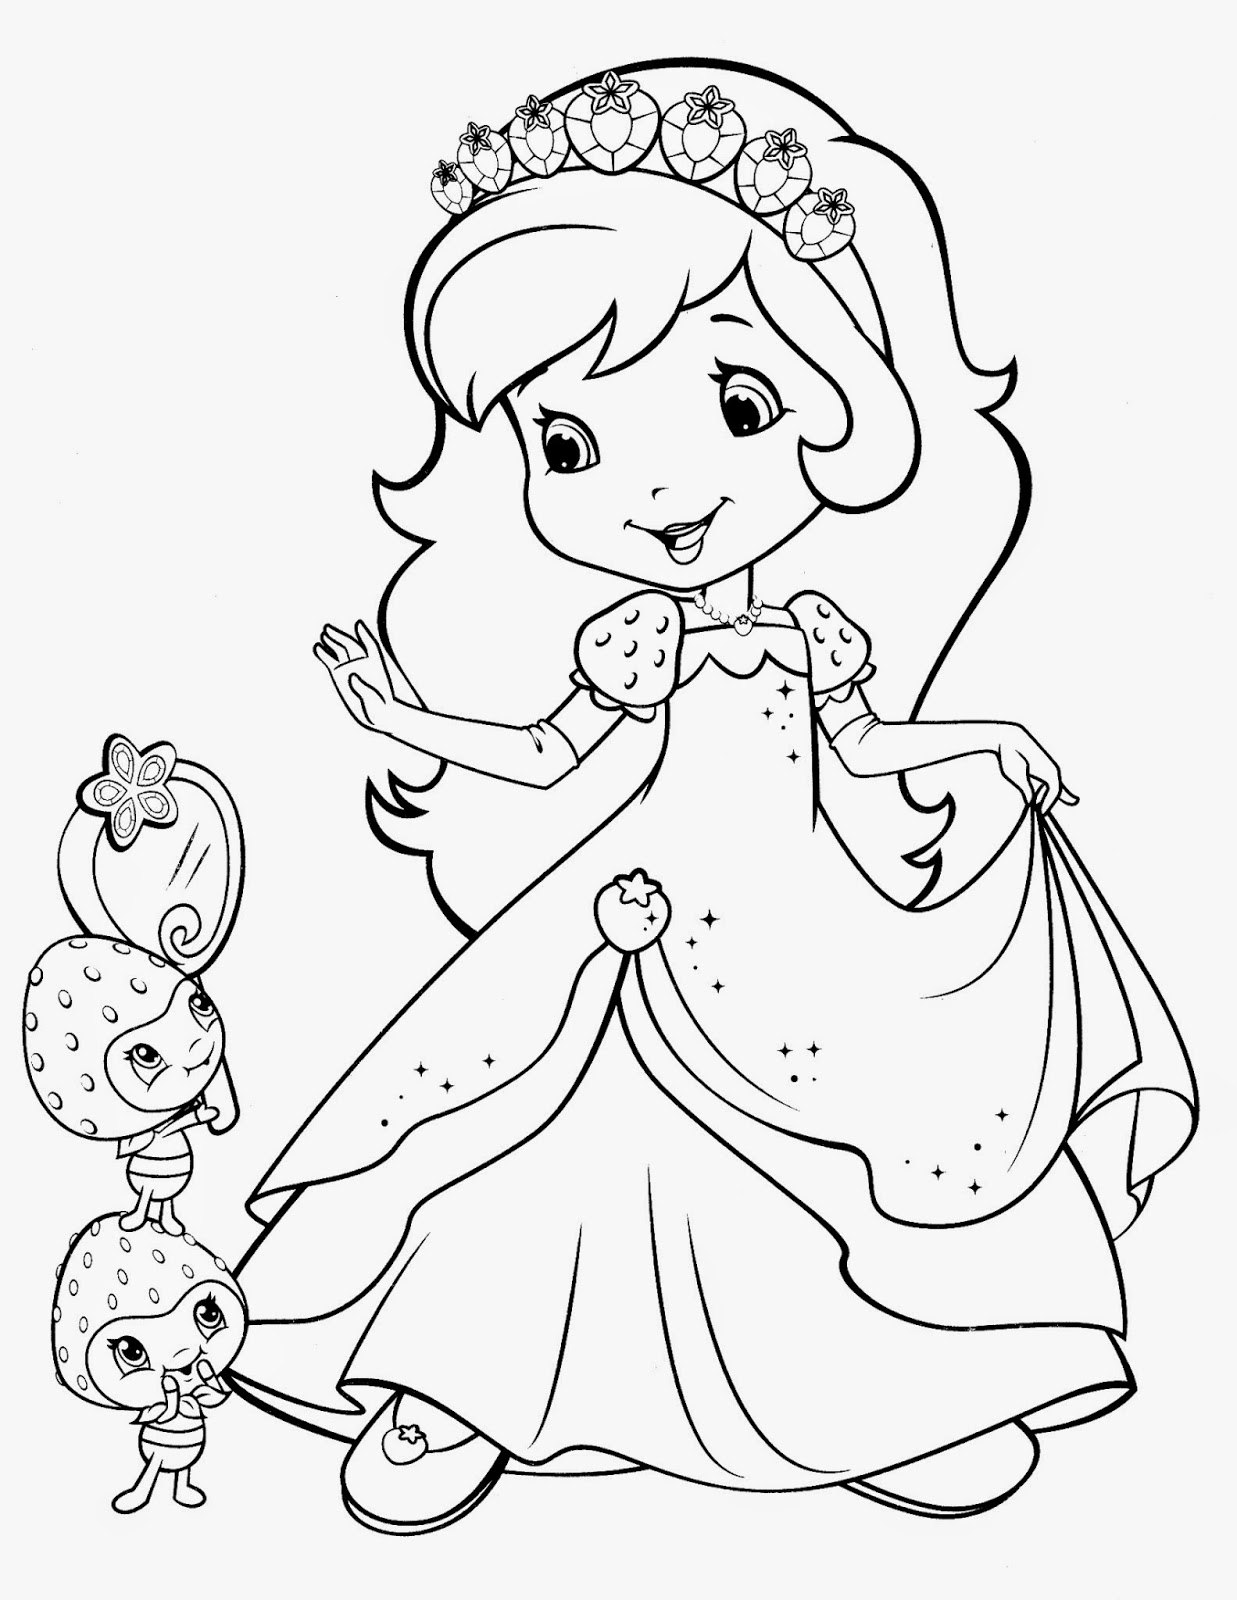 strawberry shortcake coloring pages for kids printable coloring pages strawberry shortcake coloring pages pages strawberry kids for shortcake coloring